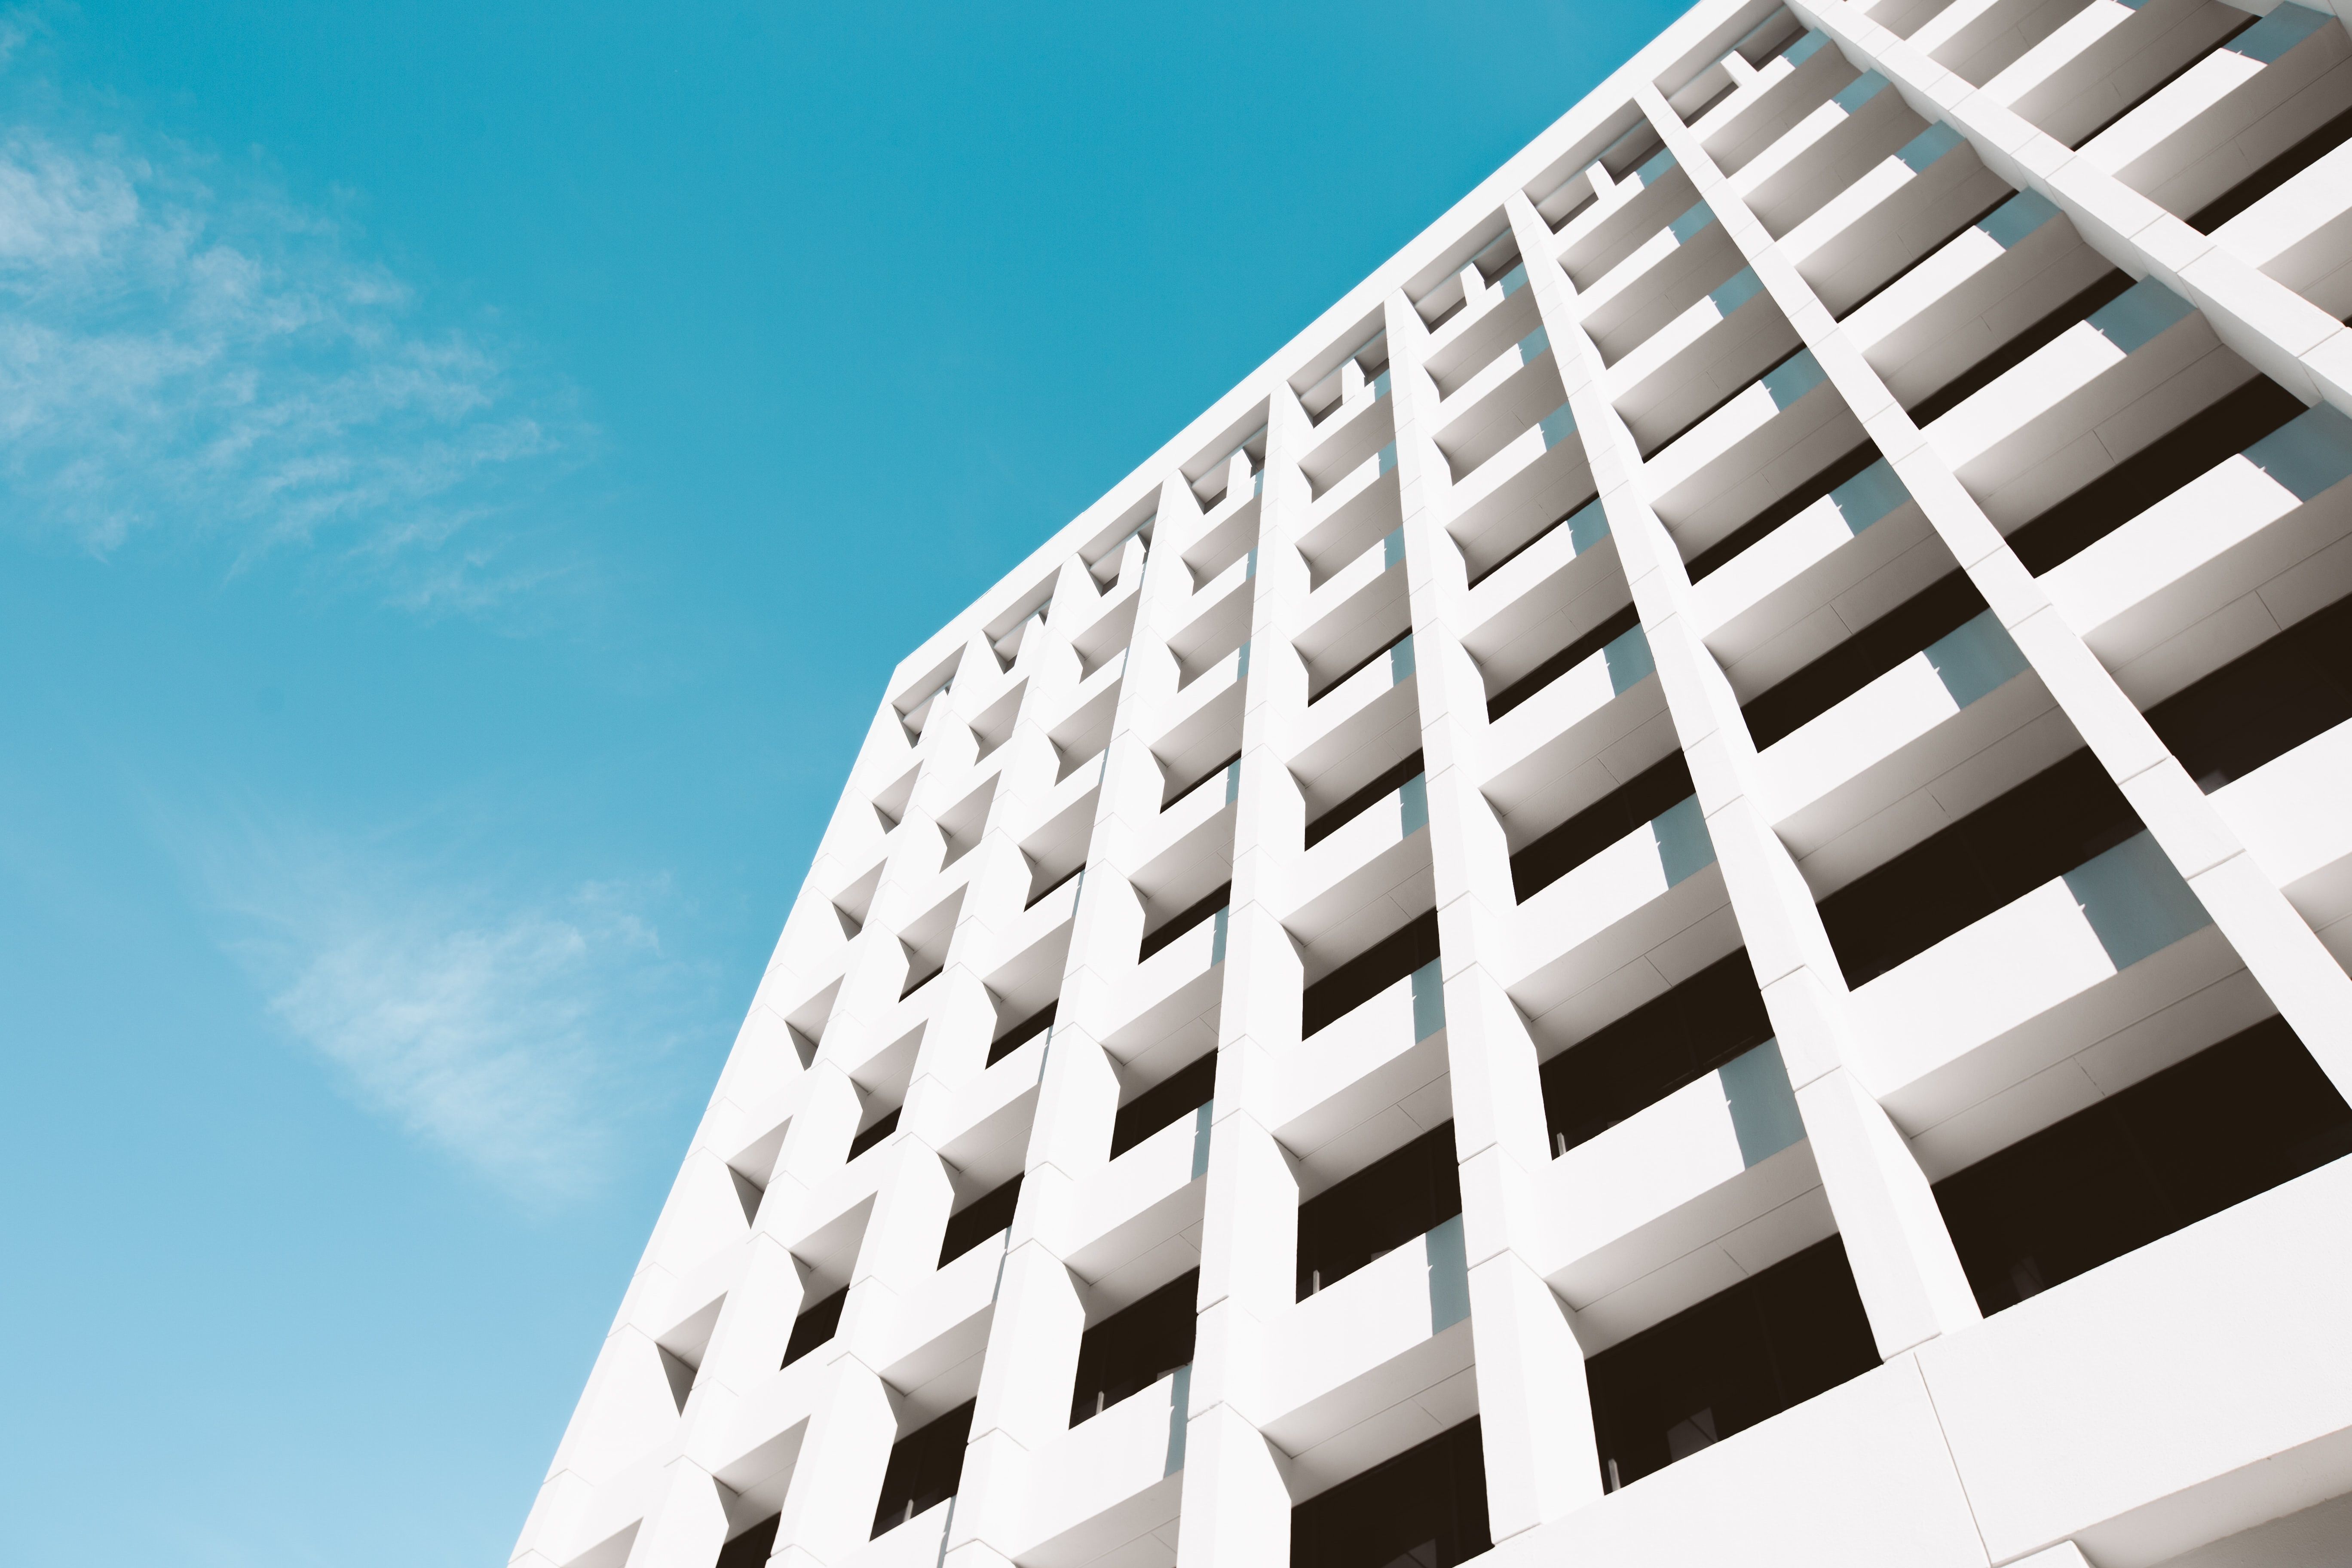 A white building facade with a cruciform pattern